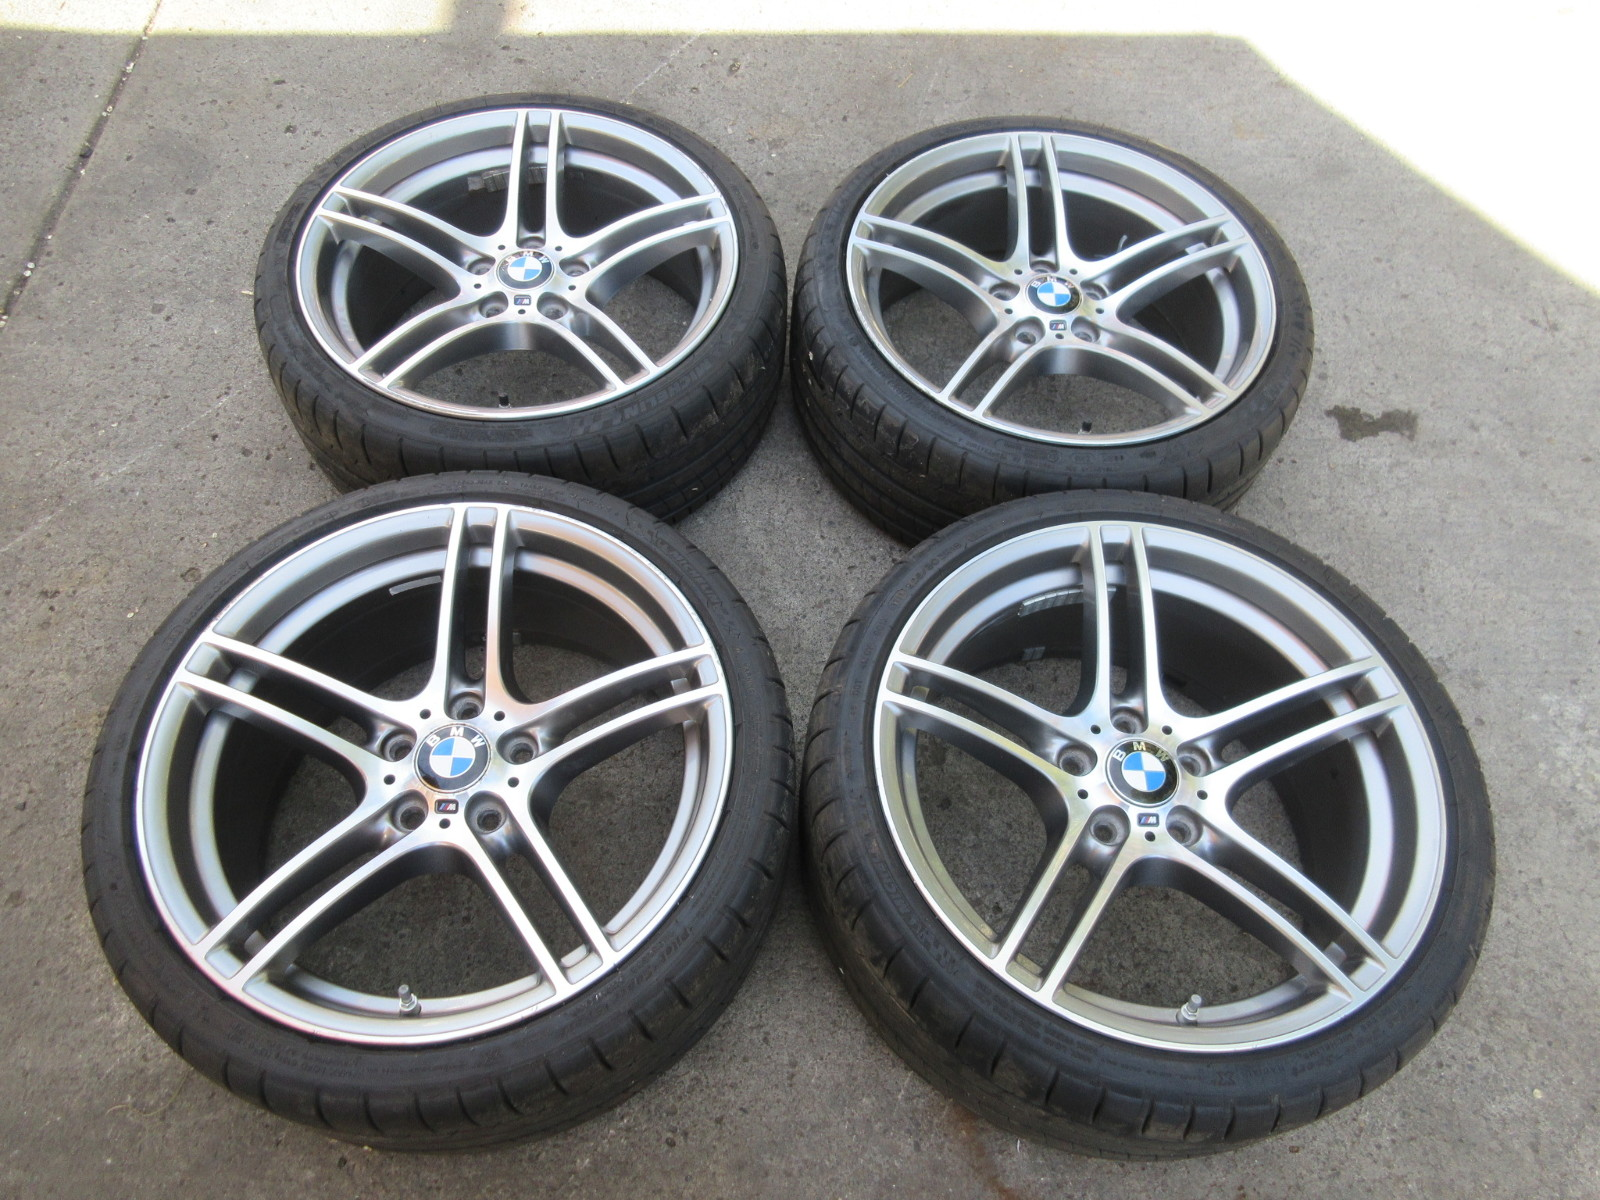 most tire wheels fits cars pin flat year inch tires old bmw on call series pirelli run